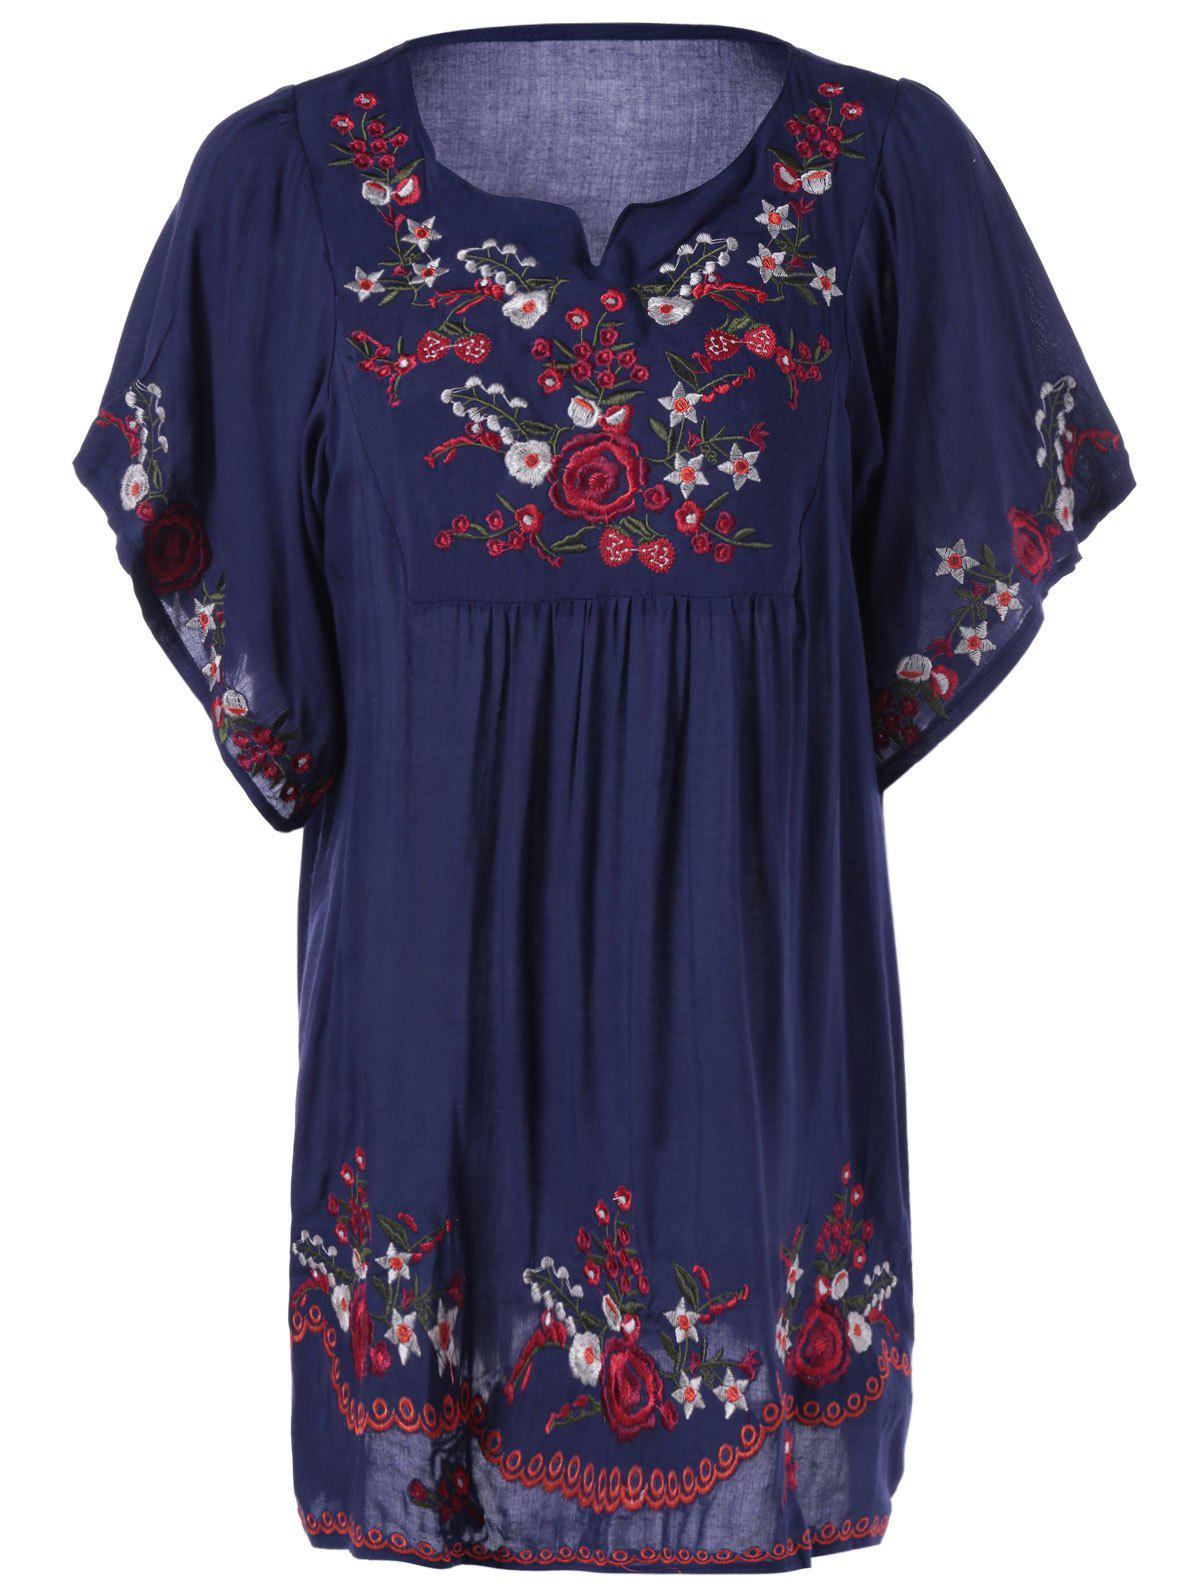 Loose-Fitting Embroidered Short Sleeves Blouse